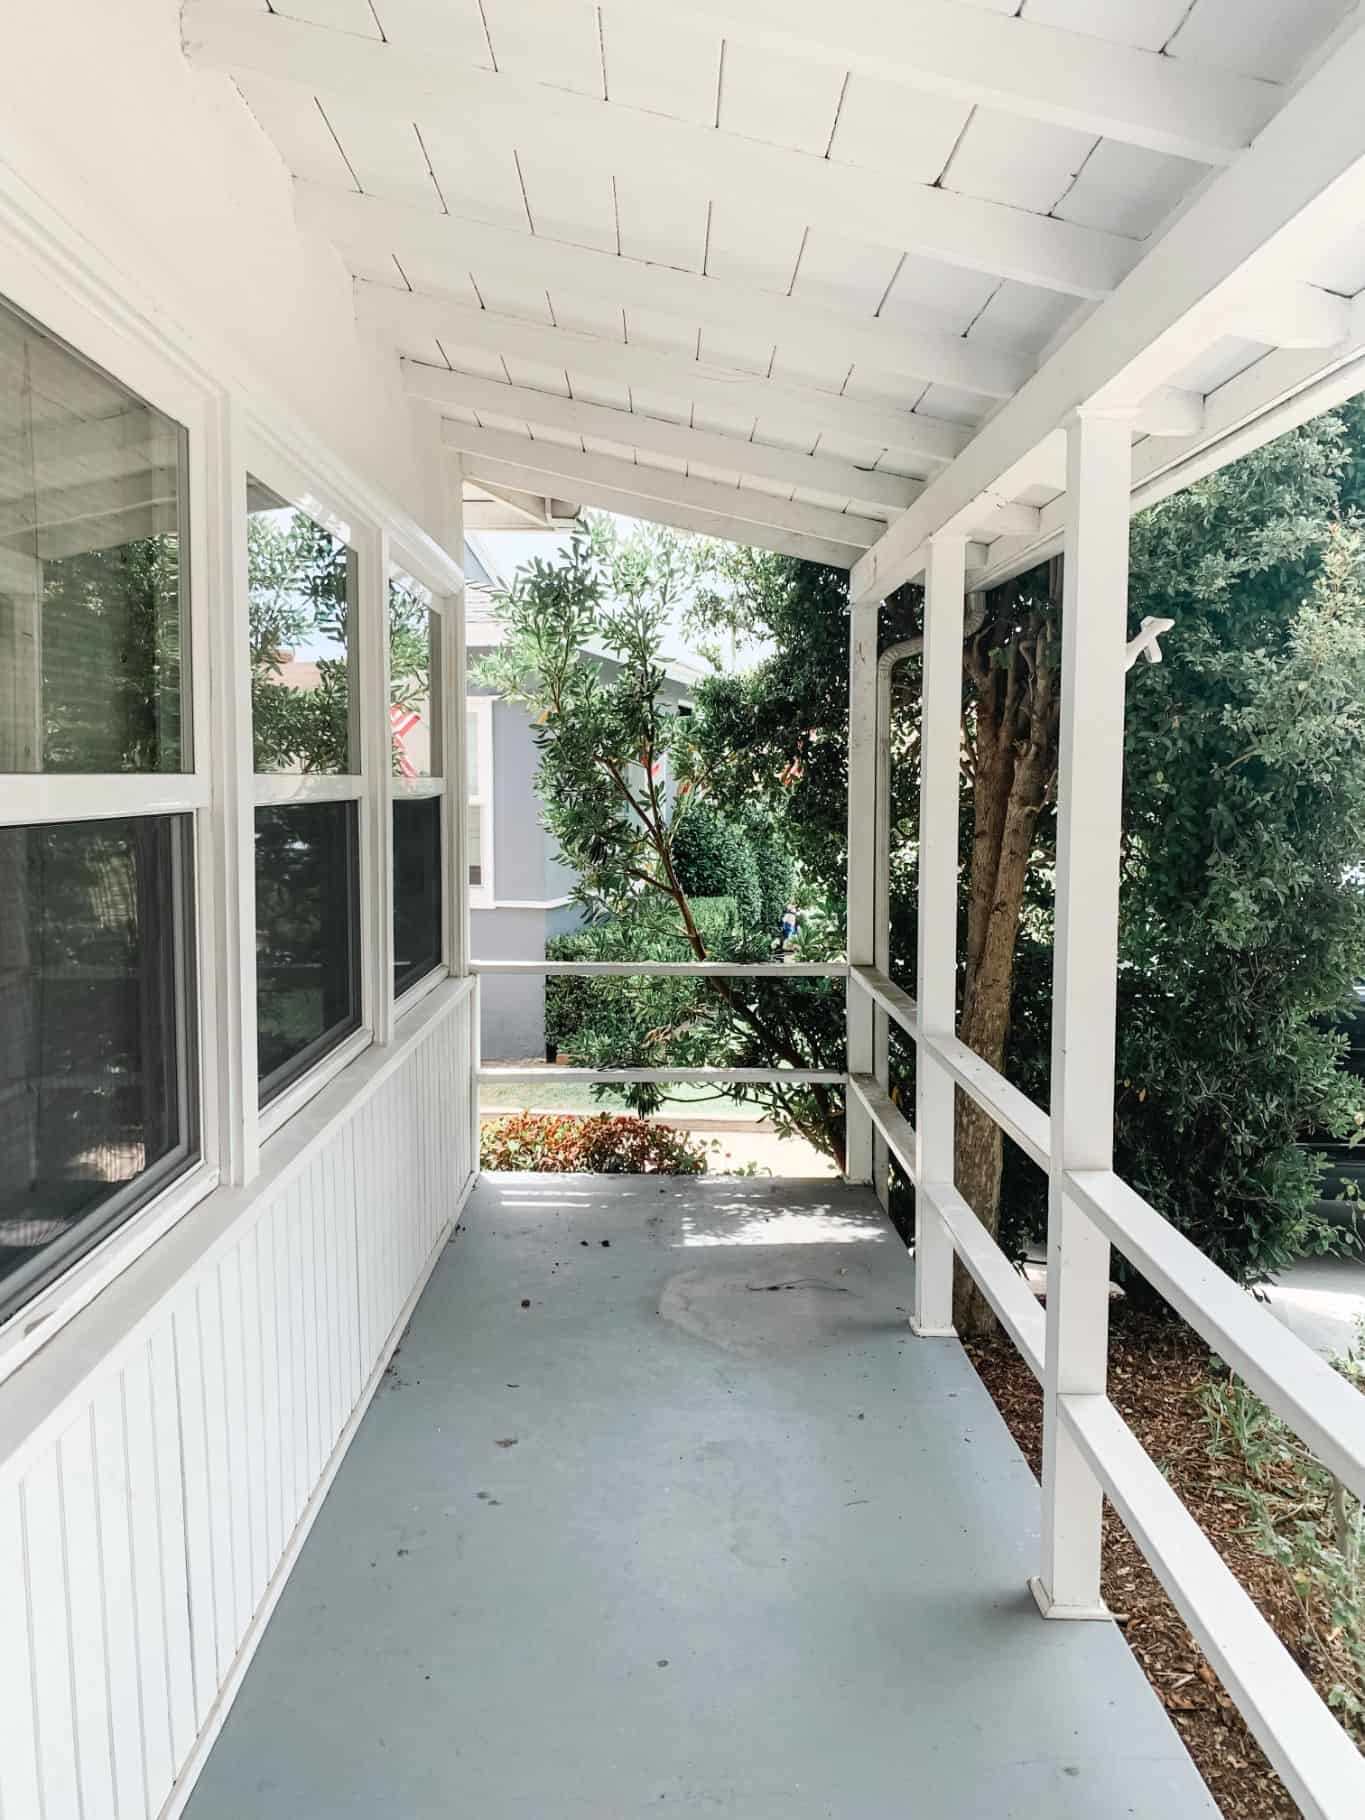 The Cottage Renovation: Before - Mindy Gayer Design Co.